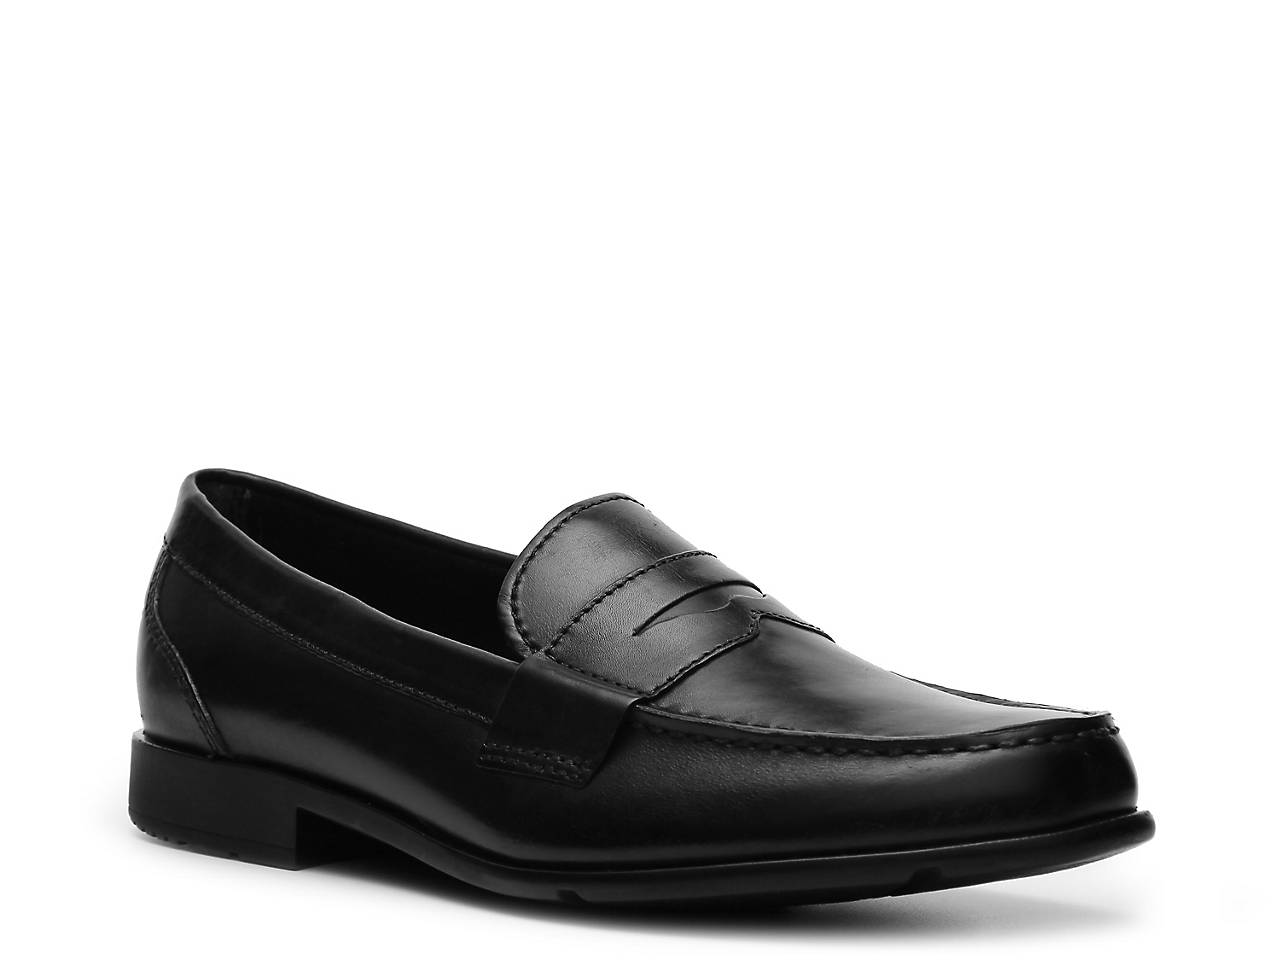 8475ddd7be9 Rockport Classic Penny Loafer Men s Shoes